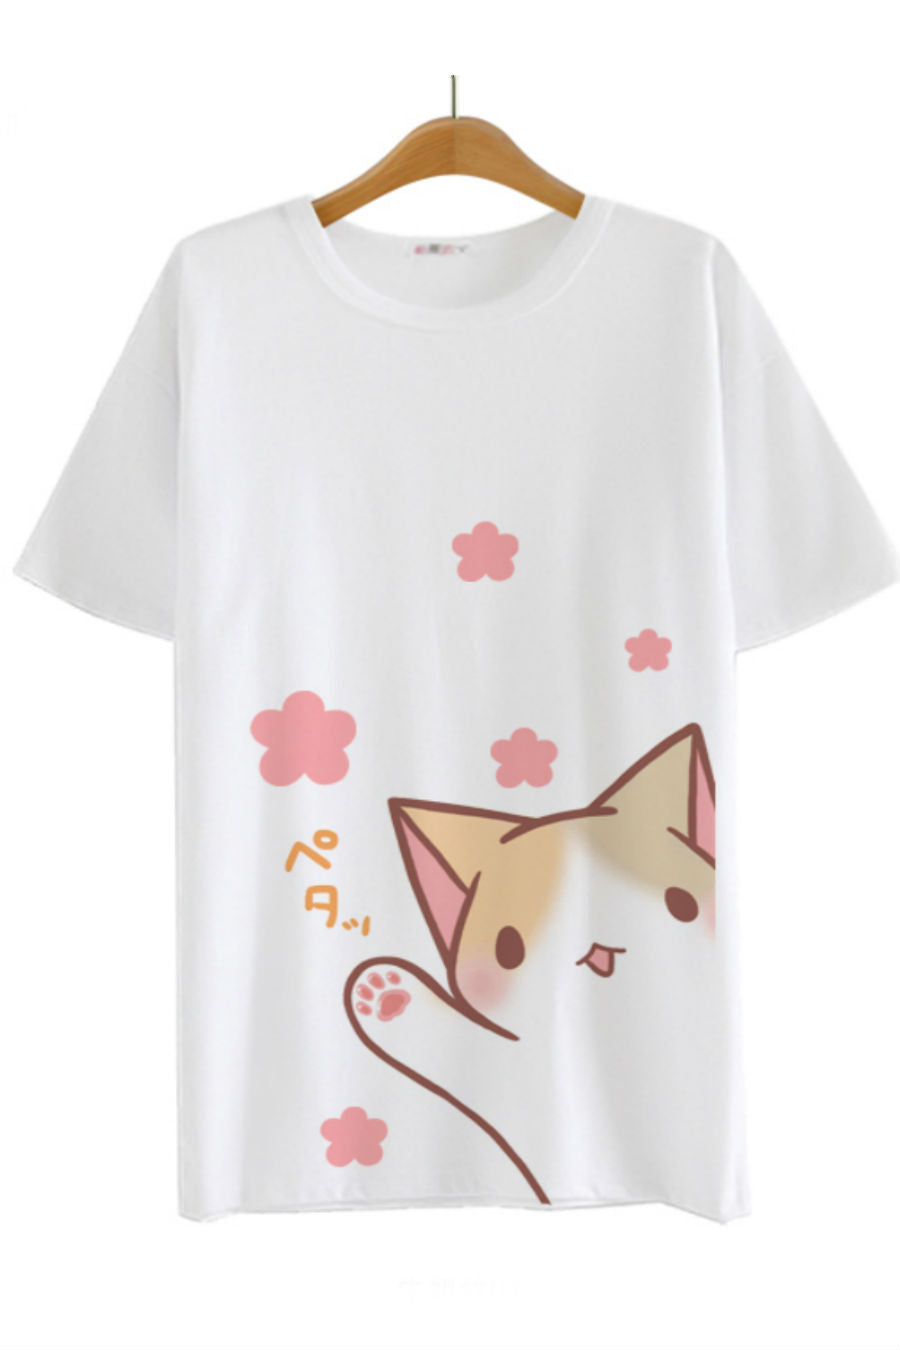 Neko Cat Sakura T-shirt